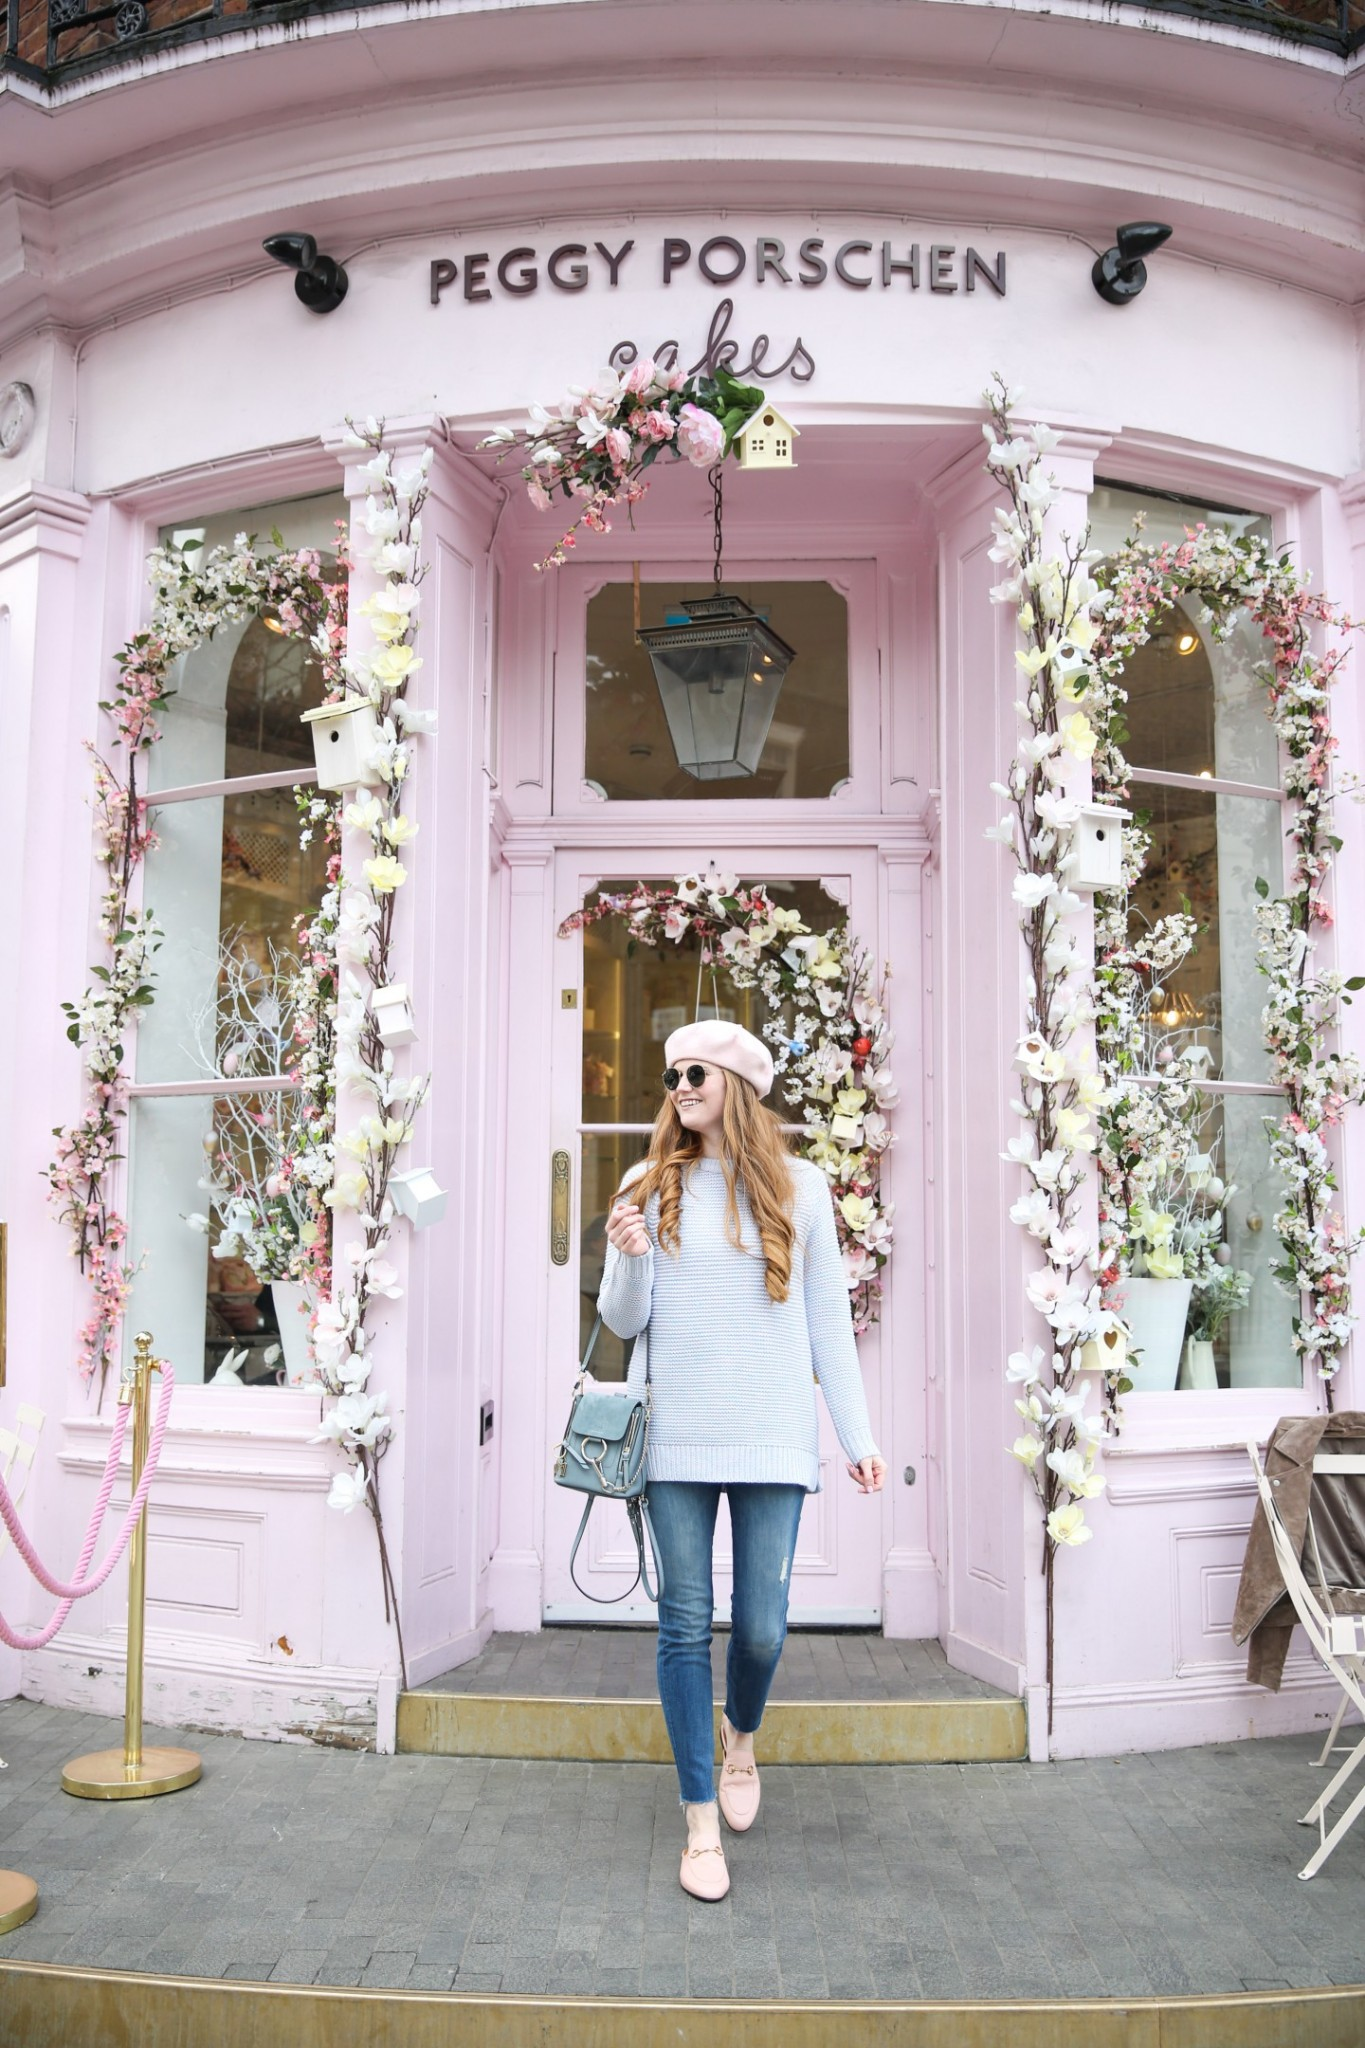 Lifestyle blogger Mollie Moore shares the top 5 most Instagram-worthy cafes in London | The Best Instagram Cafes in London featured by top London blogger, Mollie Moore